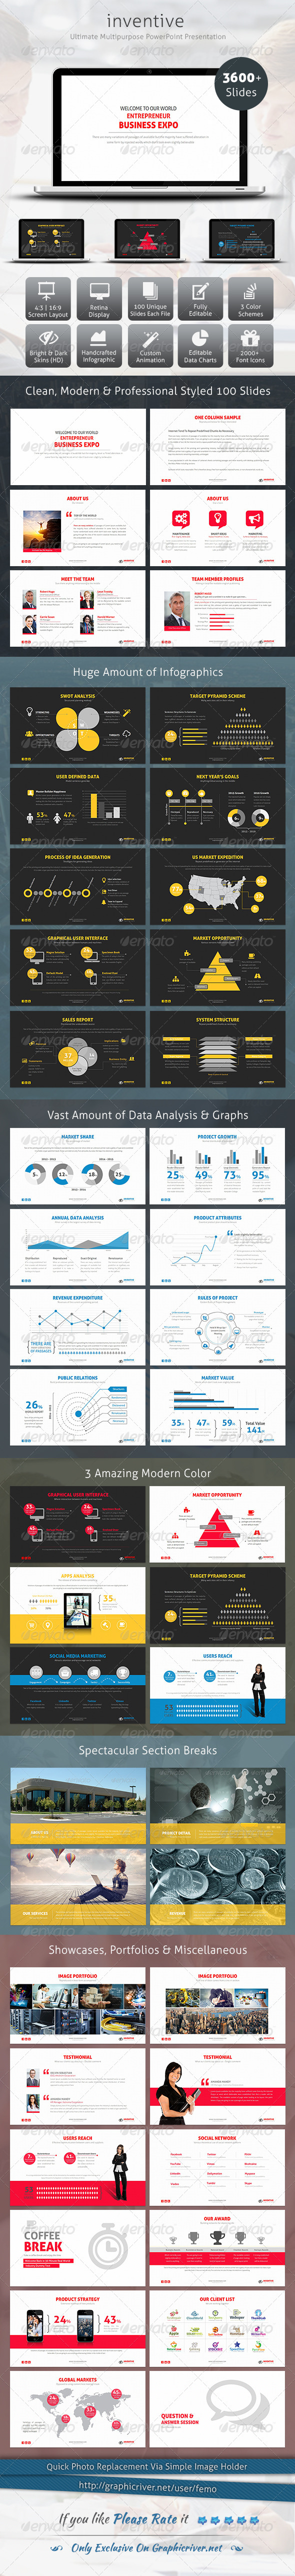 GraphicRiver Inventive PowerPoint Presentation 7636875